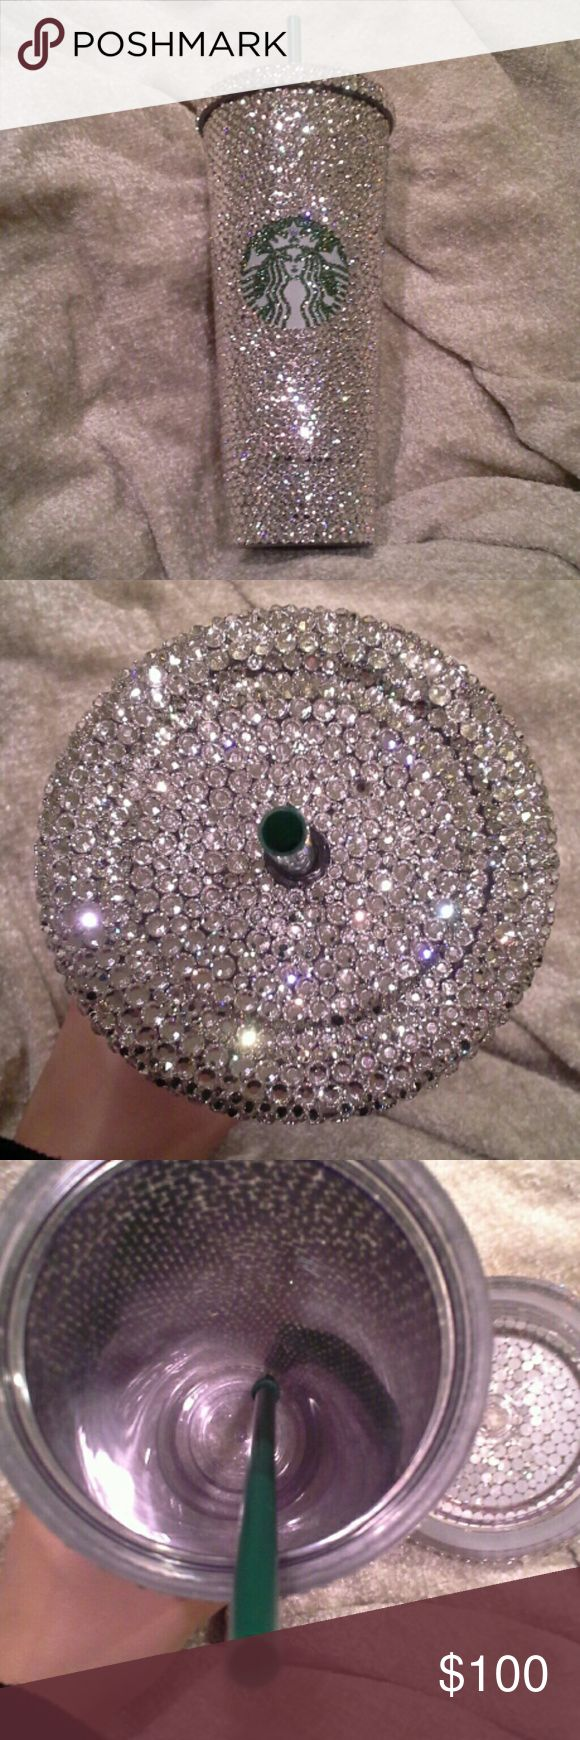 Swarovski Crystal Large Starbucks Cup -All prices negotiable  -Offers using offer button -No trades -No holds  -Bought off etsy -Swarovski Crystals  -Large Starbucks cup  -Cold drinks only -Never used  -Reason for selling: never used. starbucks Other